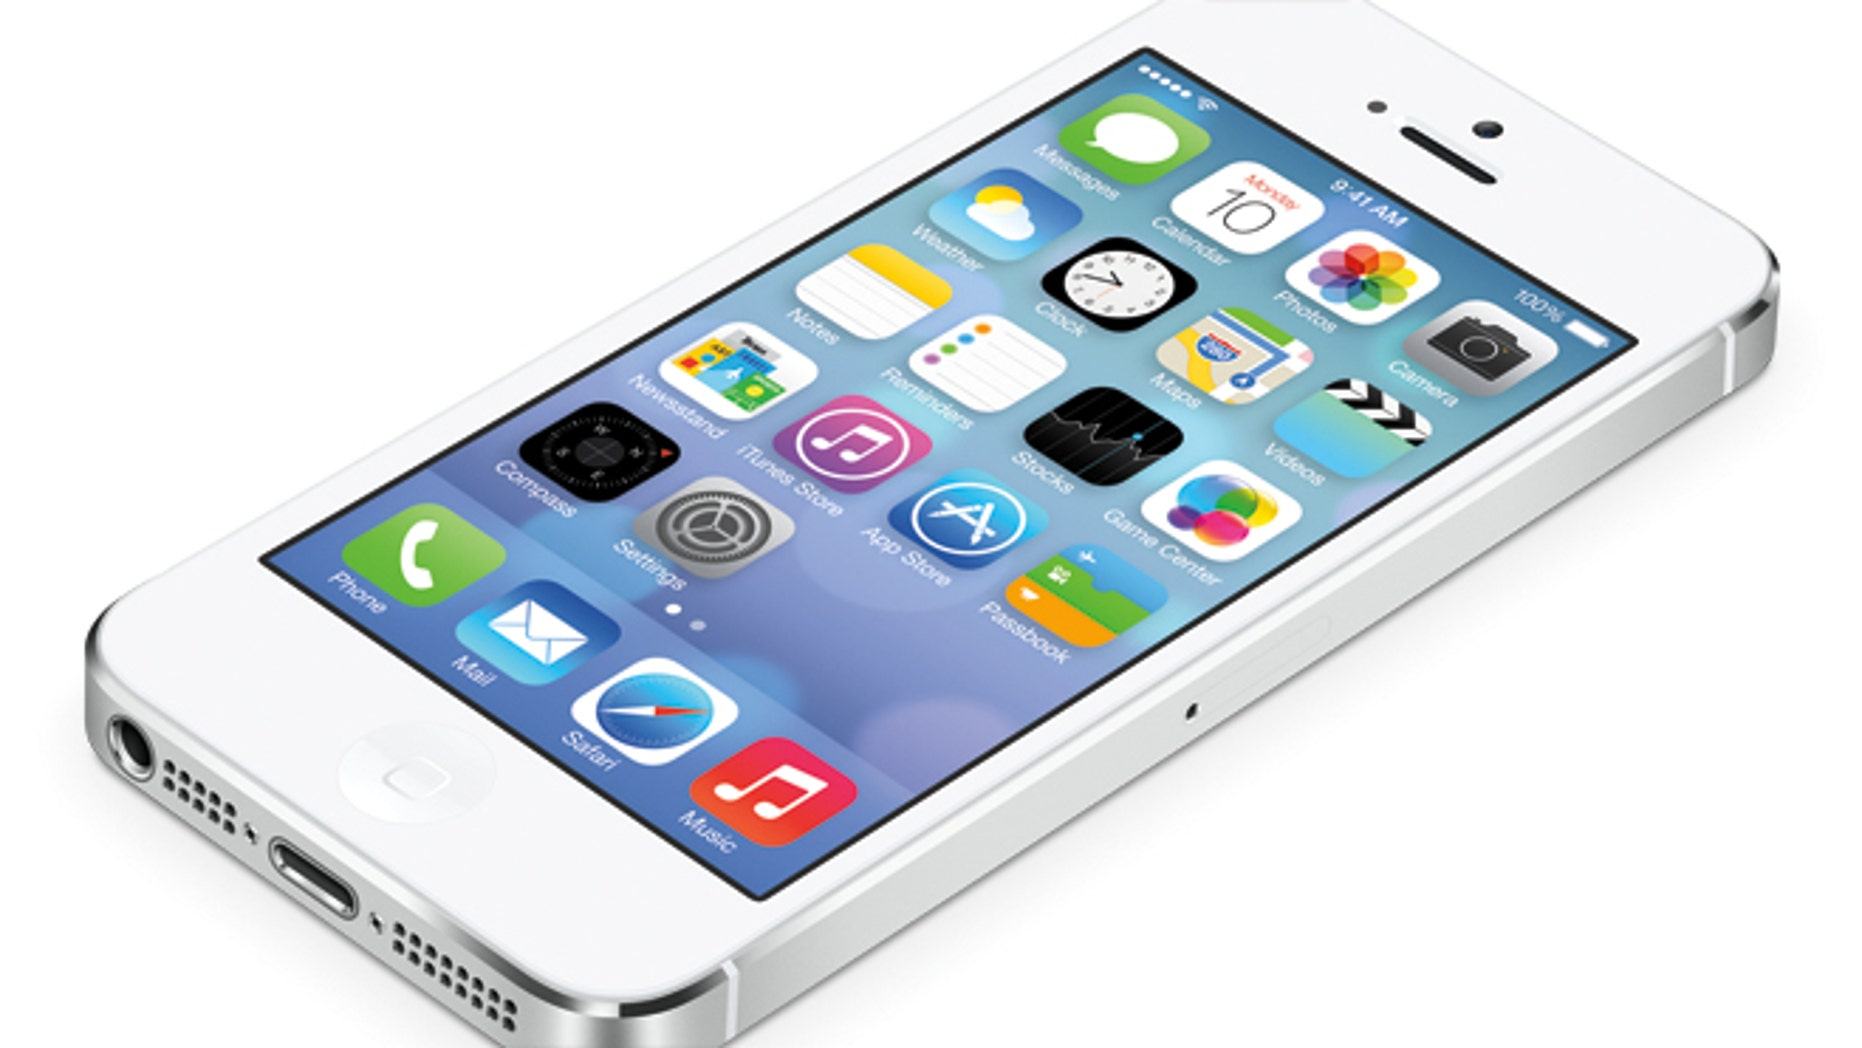 Apple's iOS7, which the company called the most significant update to the software powering the iPhone since it was first unveiled.